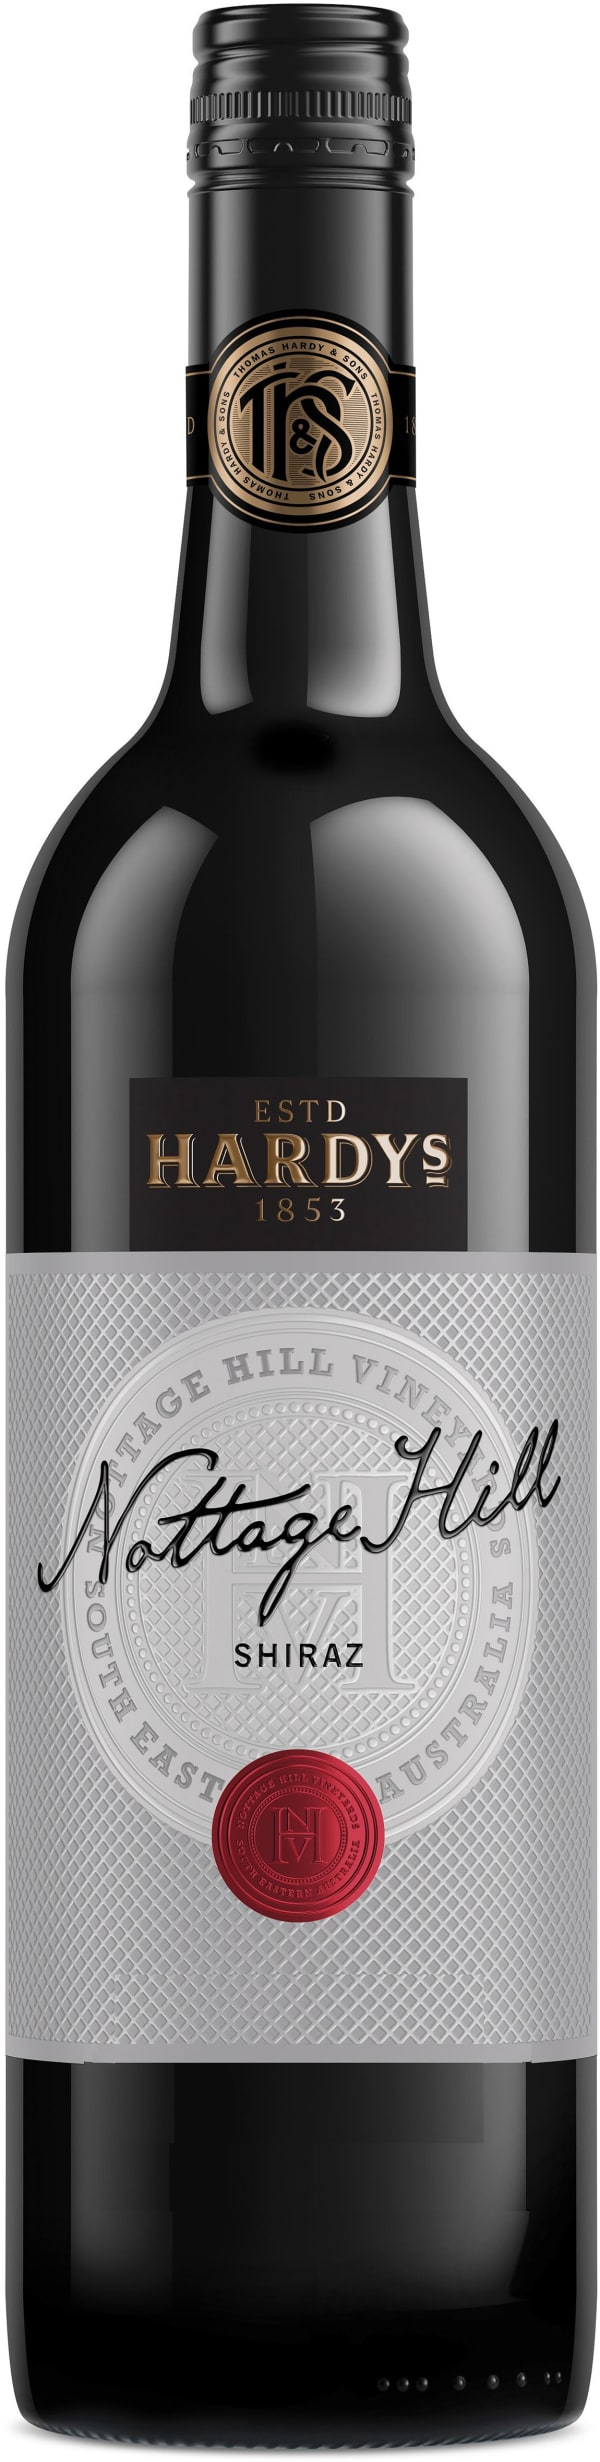 Hardys Nottage Hill Shiraz 2013